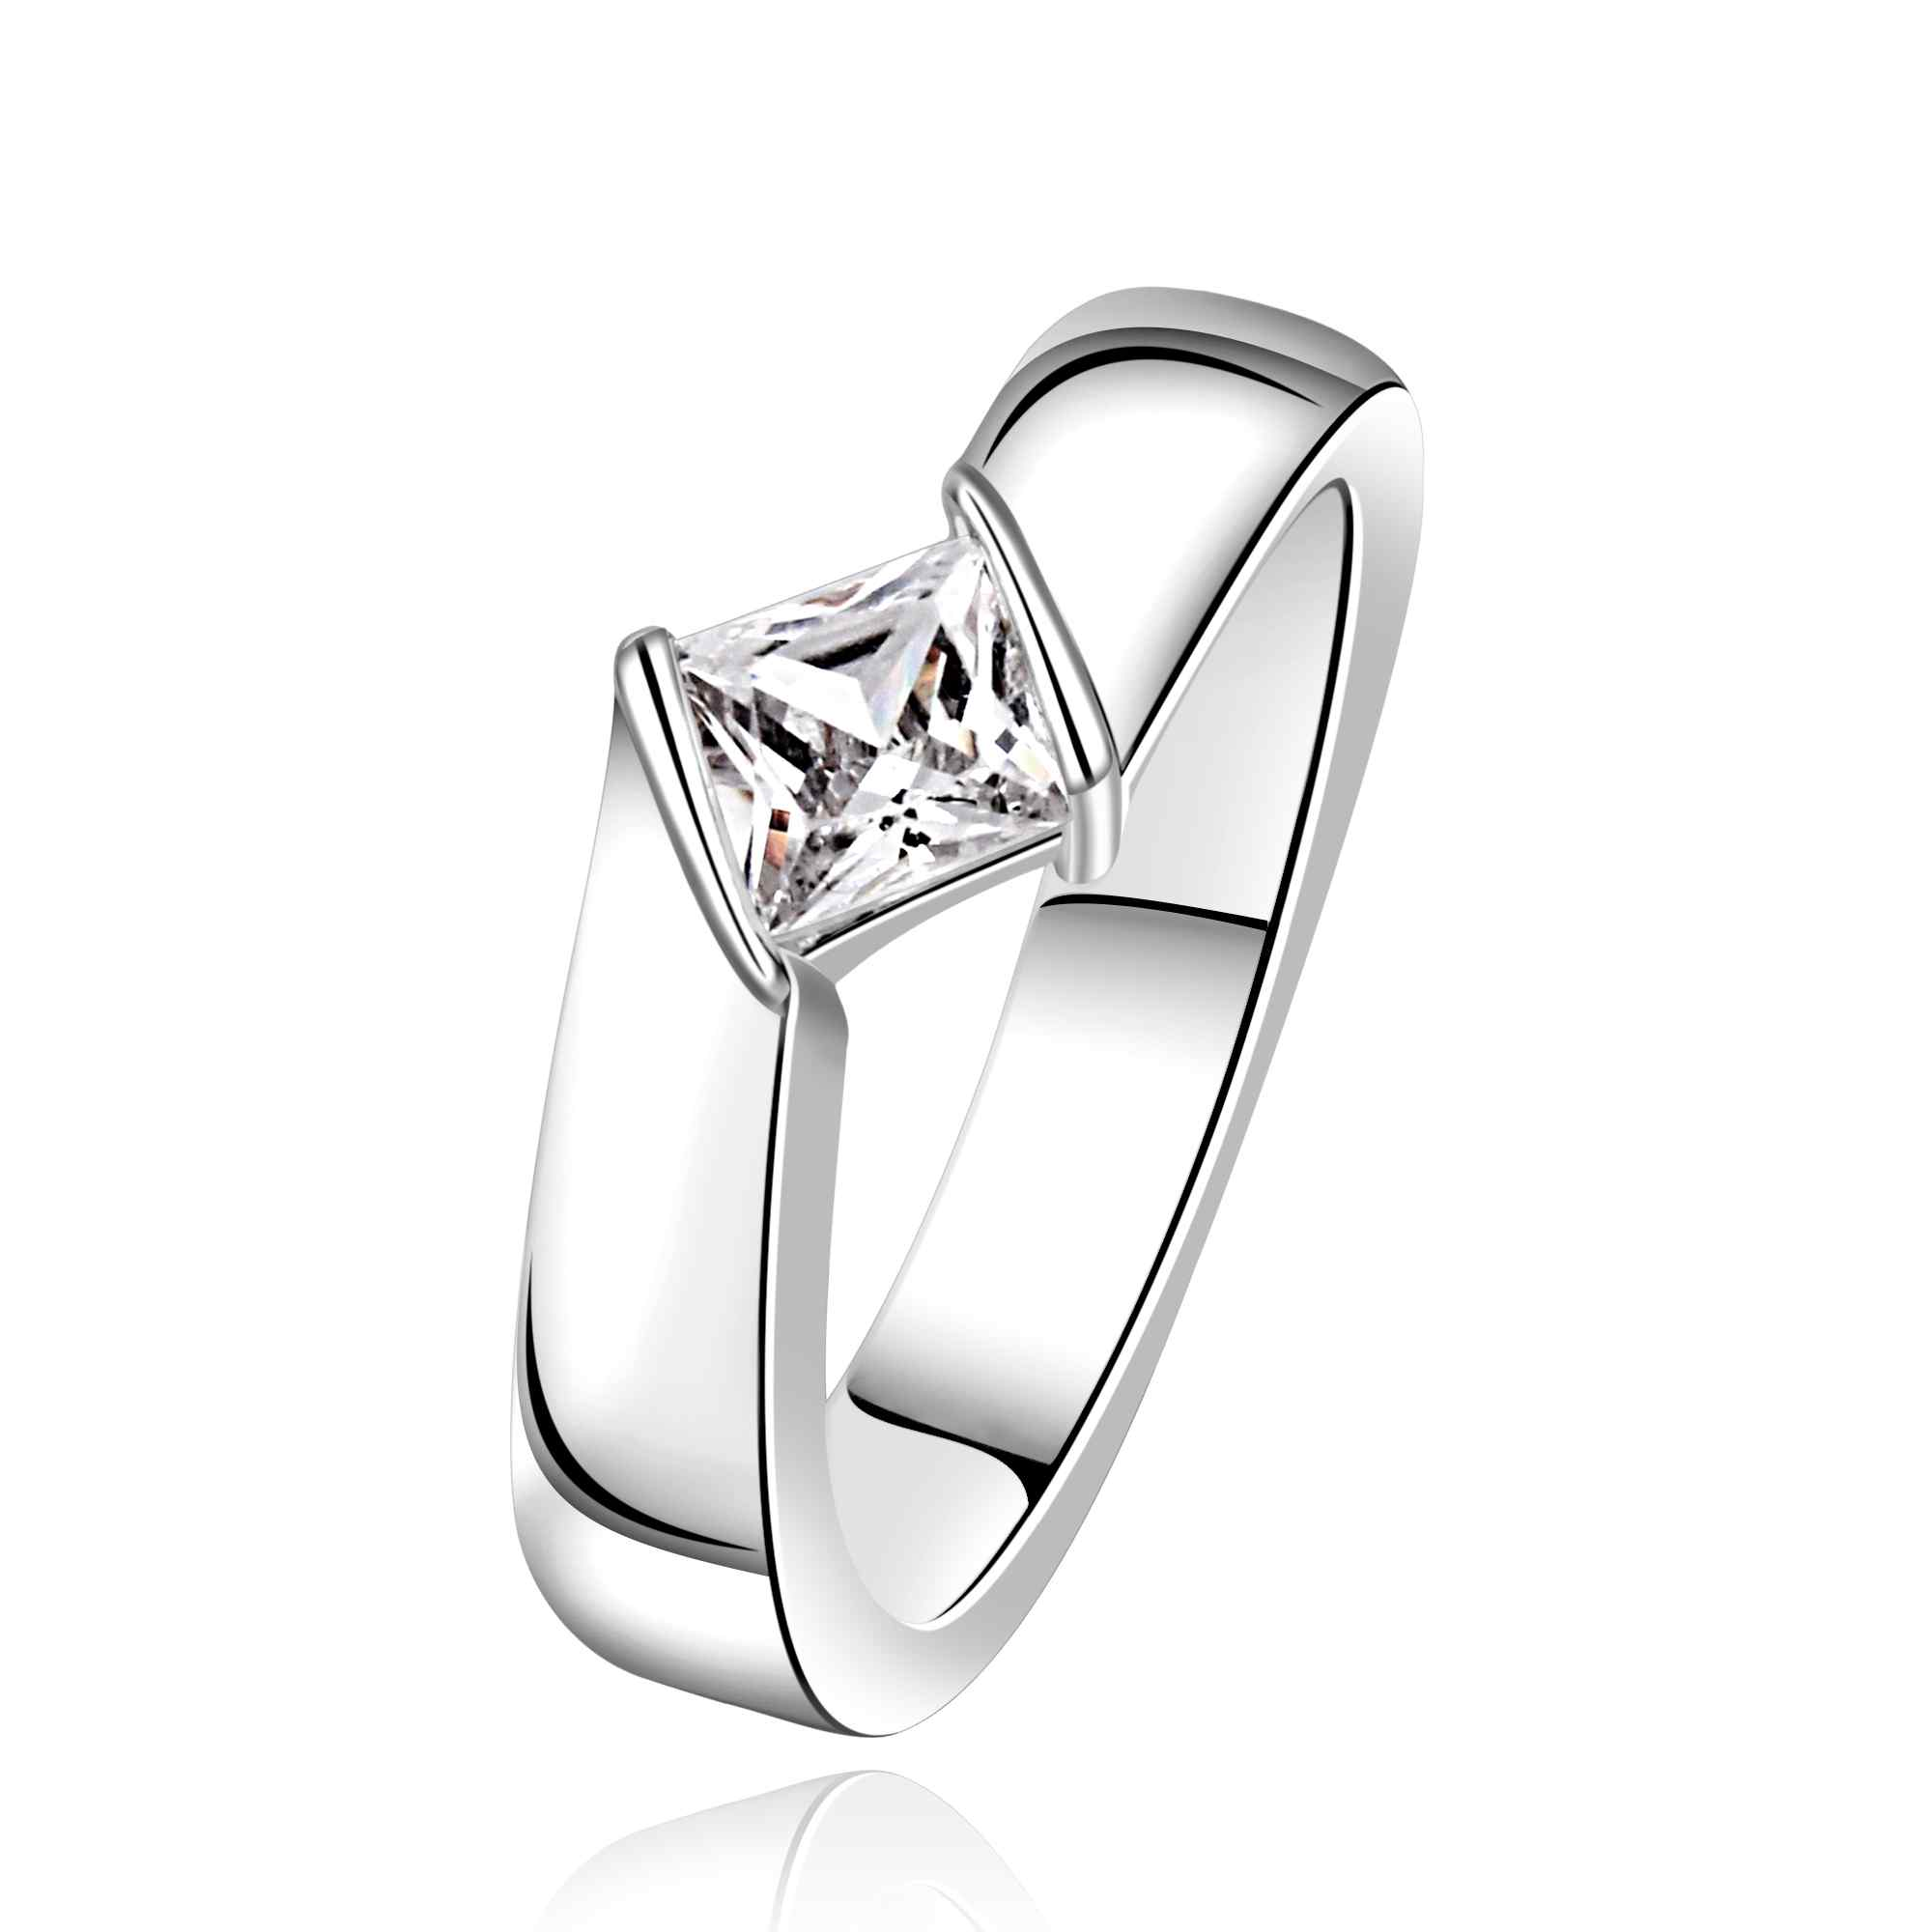 Free Shipping Floating Charms Silver Plated Ring Zone Qru Anel Feminino  Costume Jewellery Smtr635(china